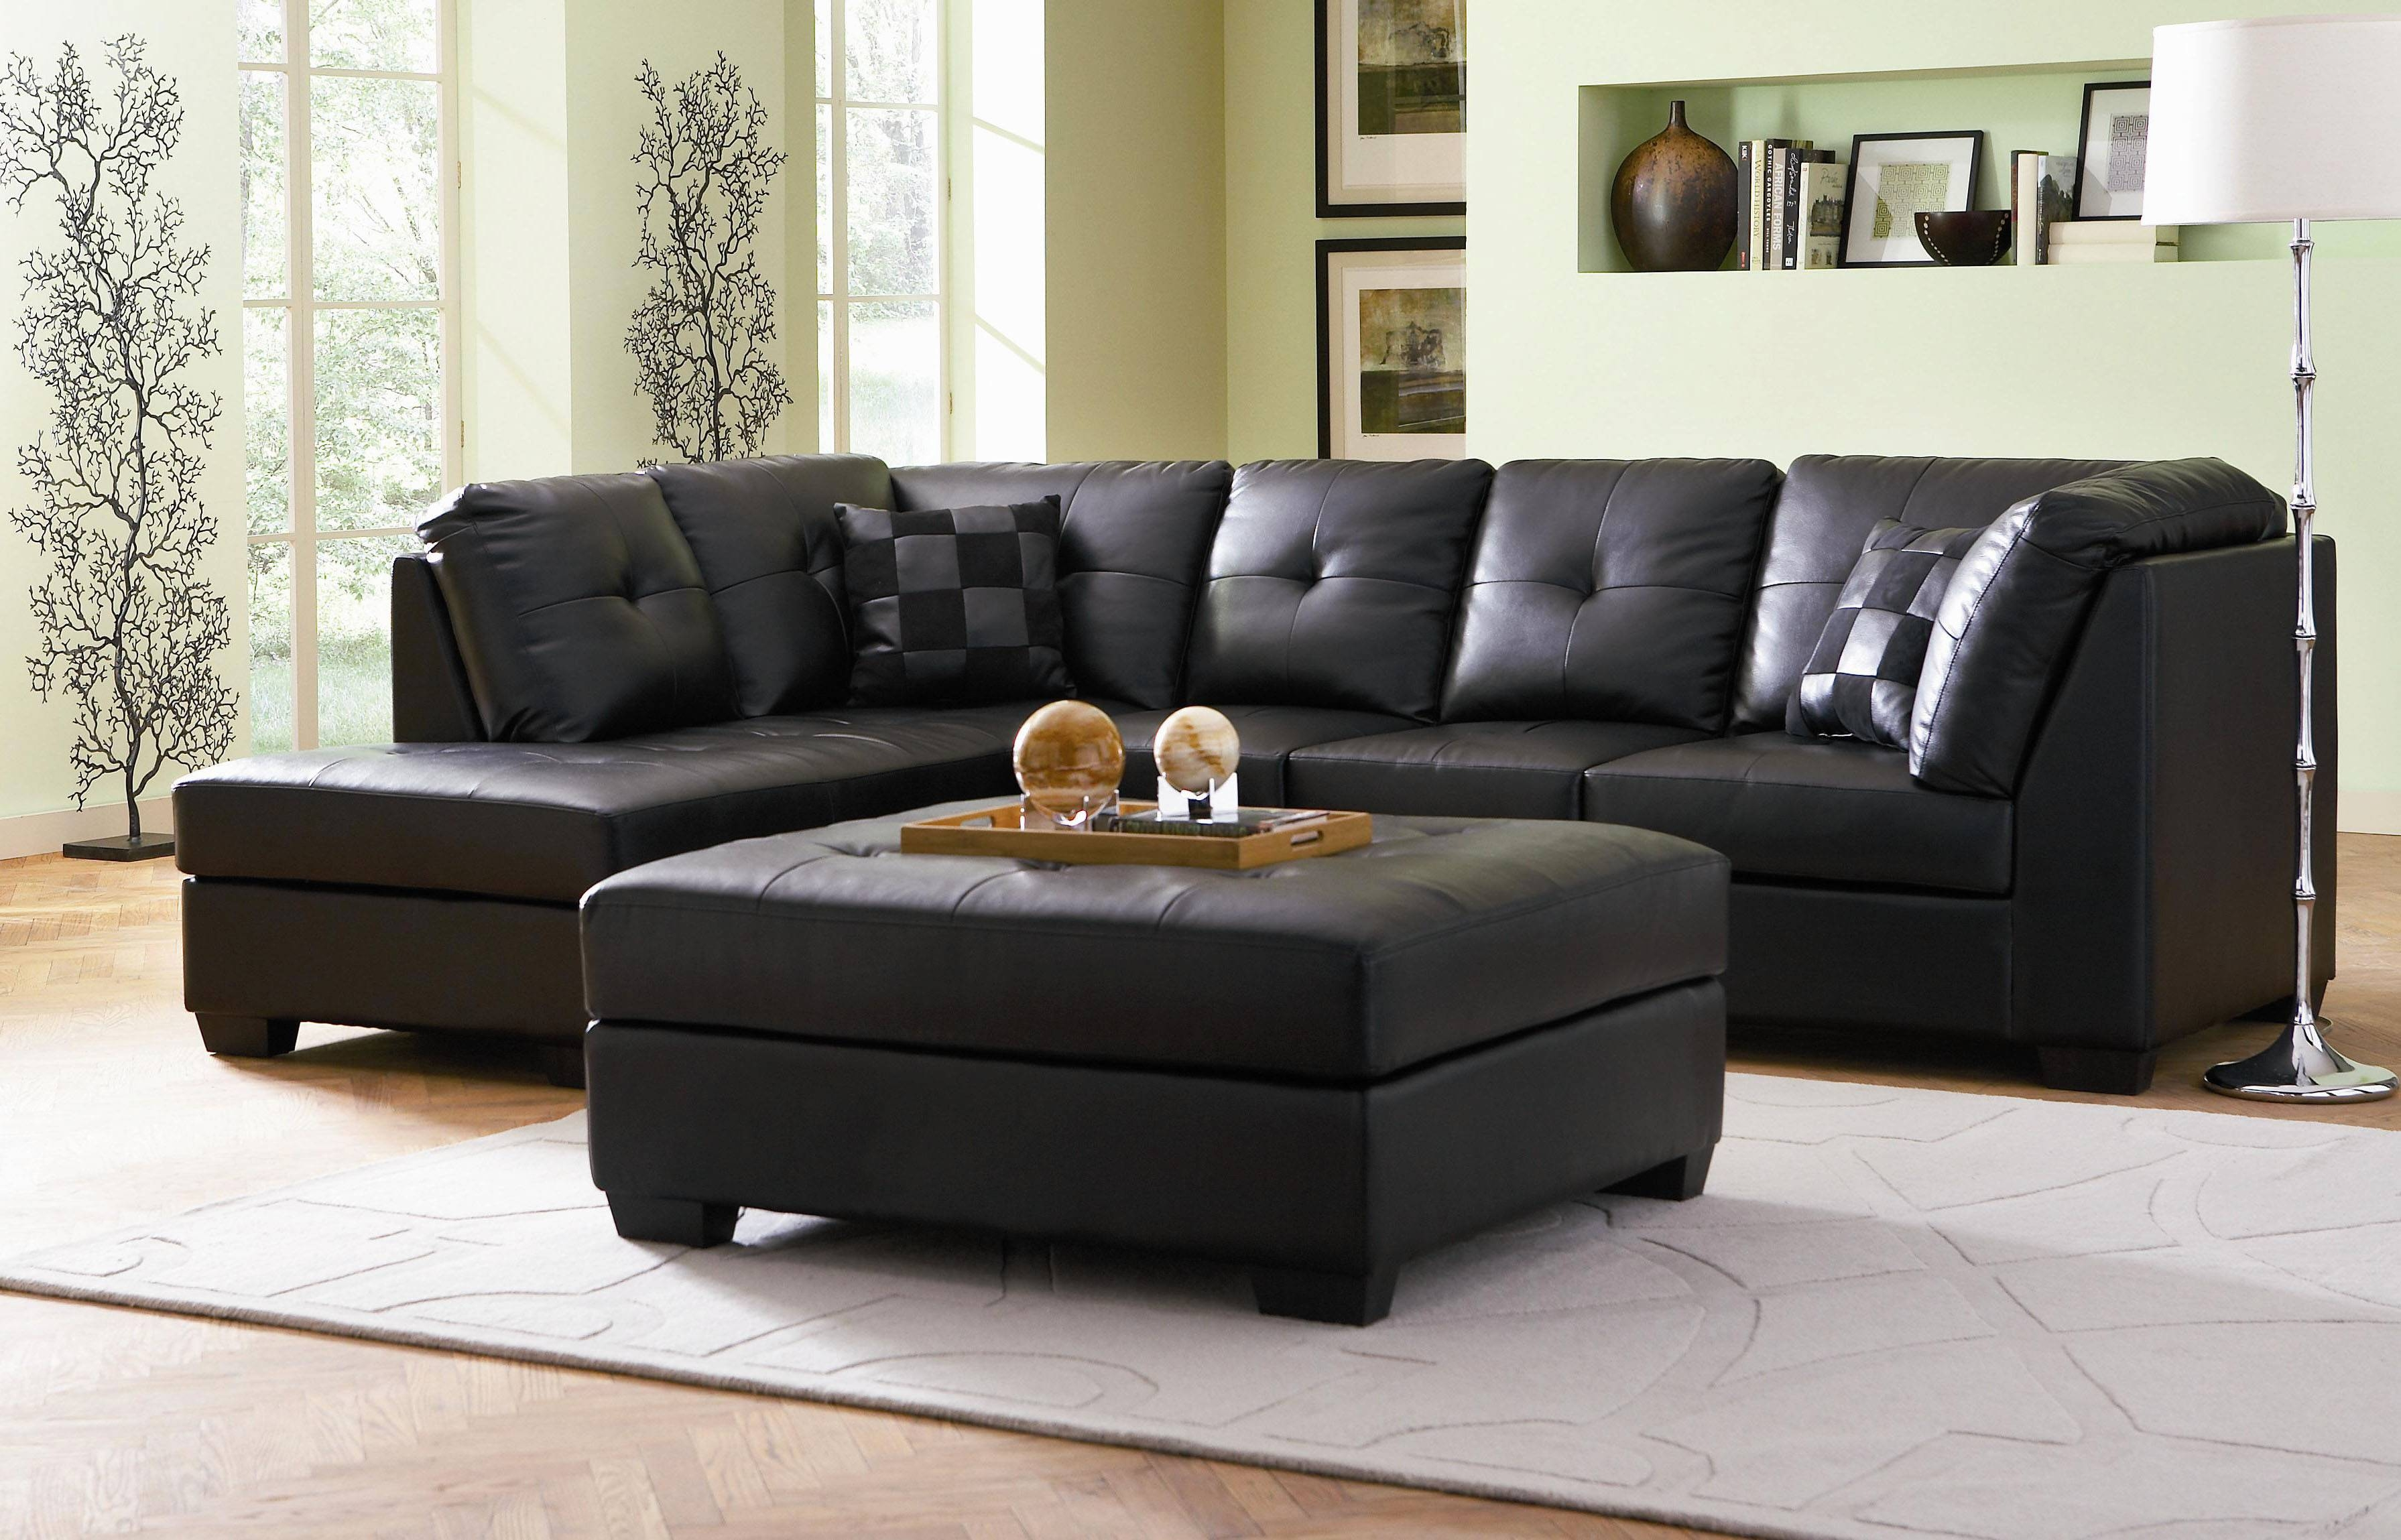 Inspiring Small L Shaped Sectional Sofa 58 For Your Ikea With Sofa with Small L-Shaped Sectional Sofas (Image 8 of 15)